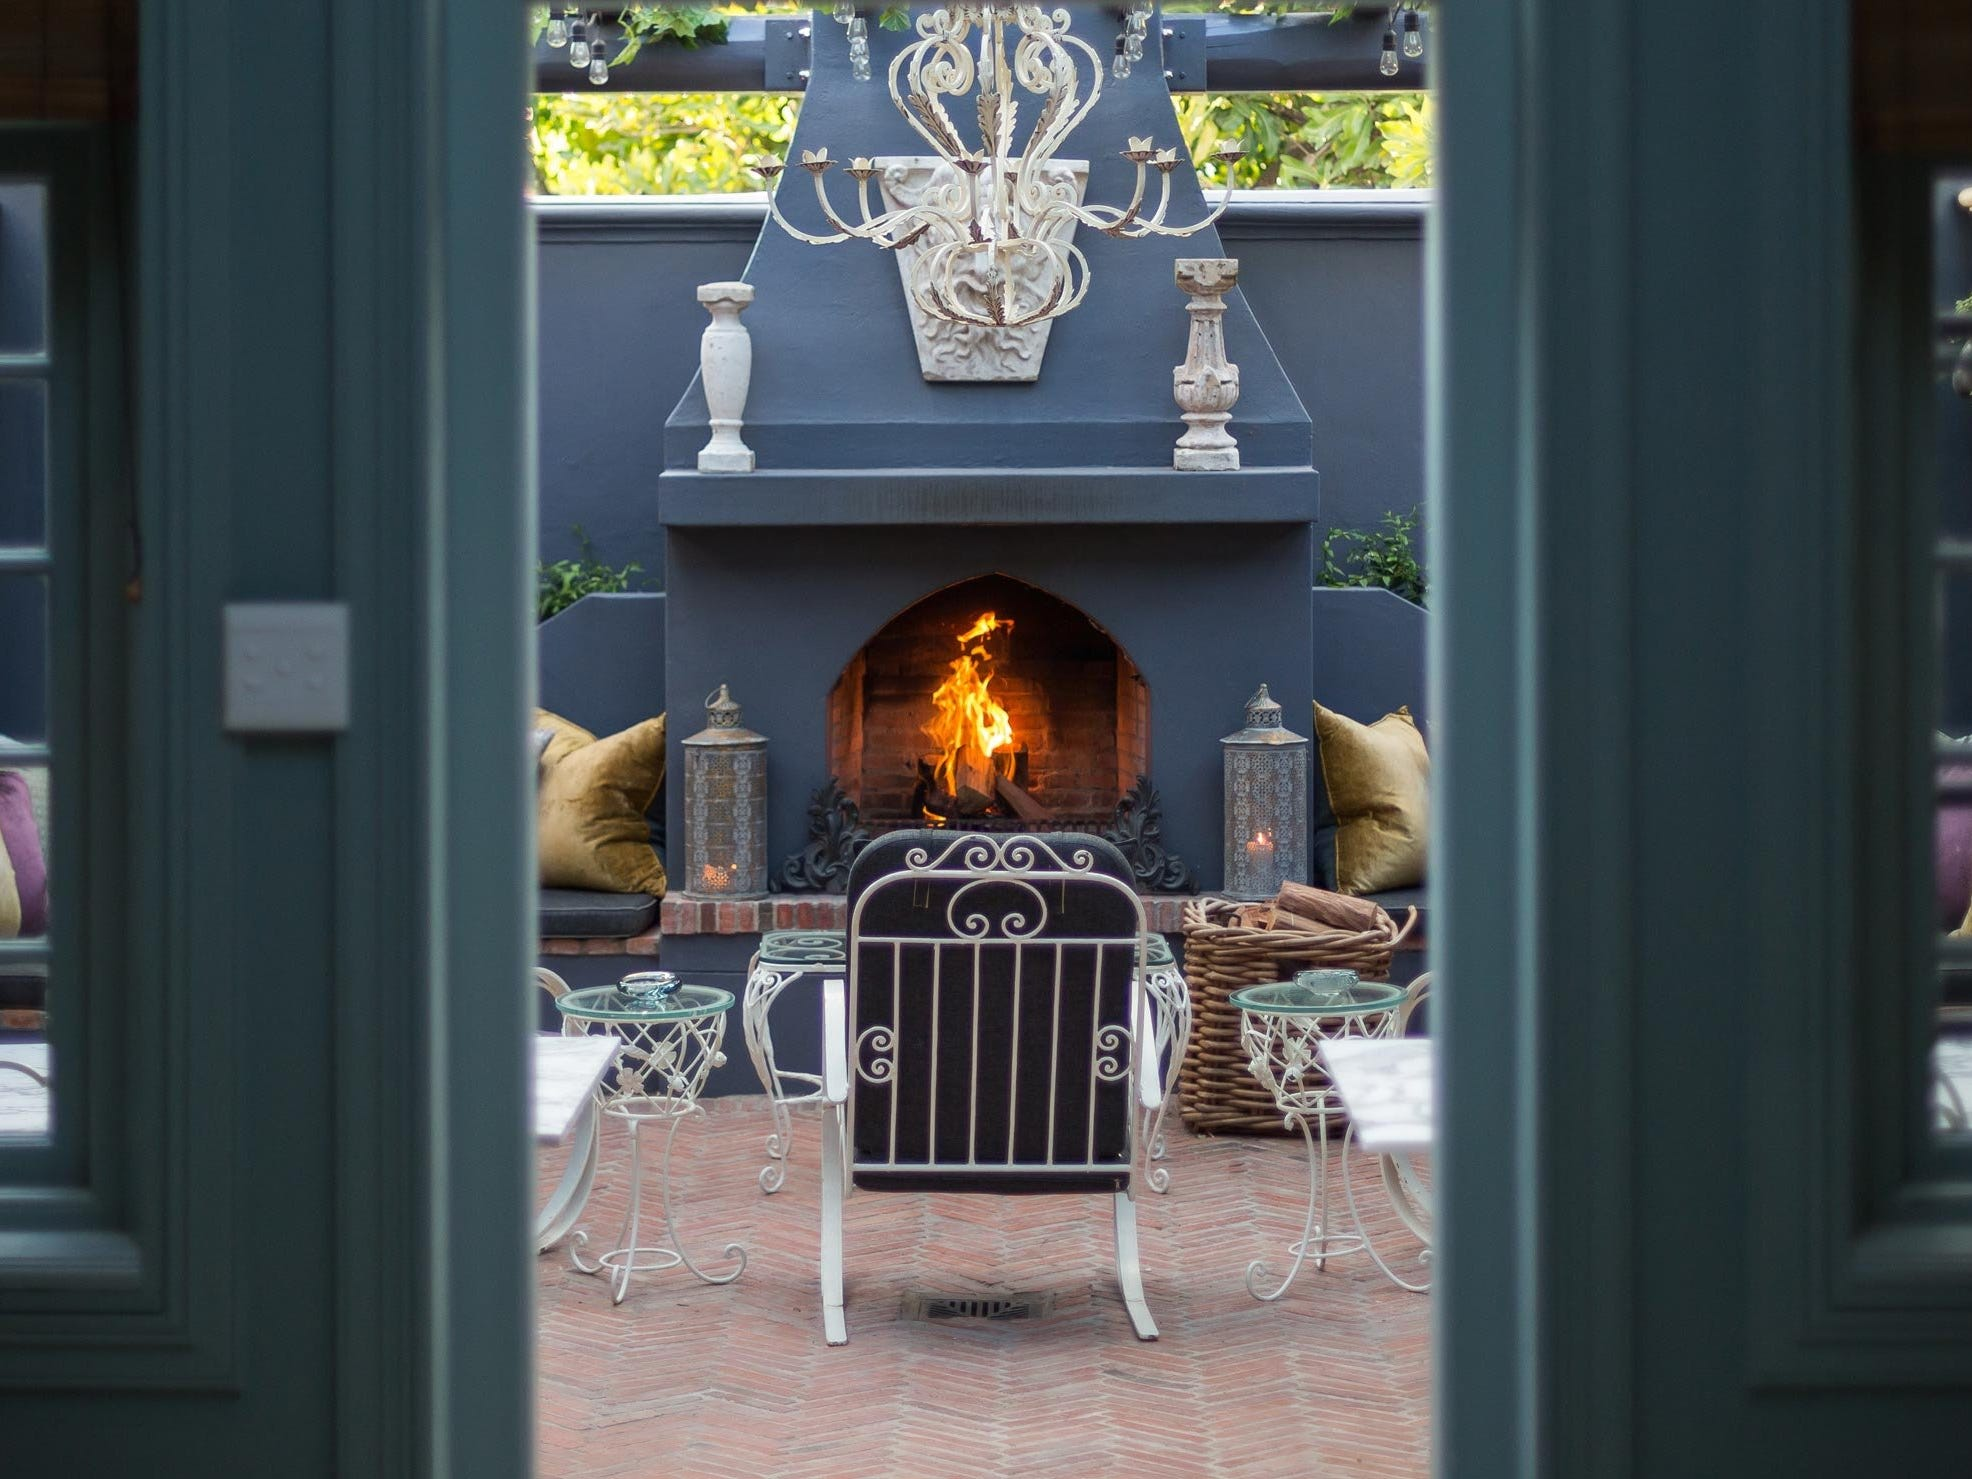 No. 7: Akademie Street Boutique Hotel in Franschhoek, South Africa.